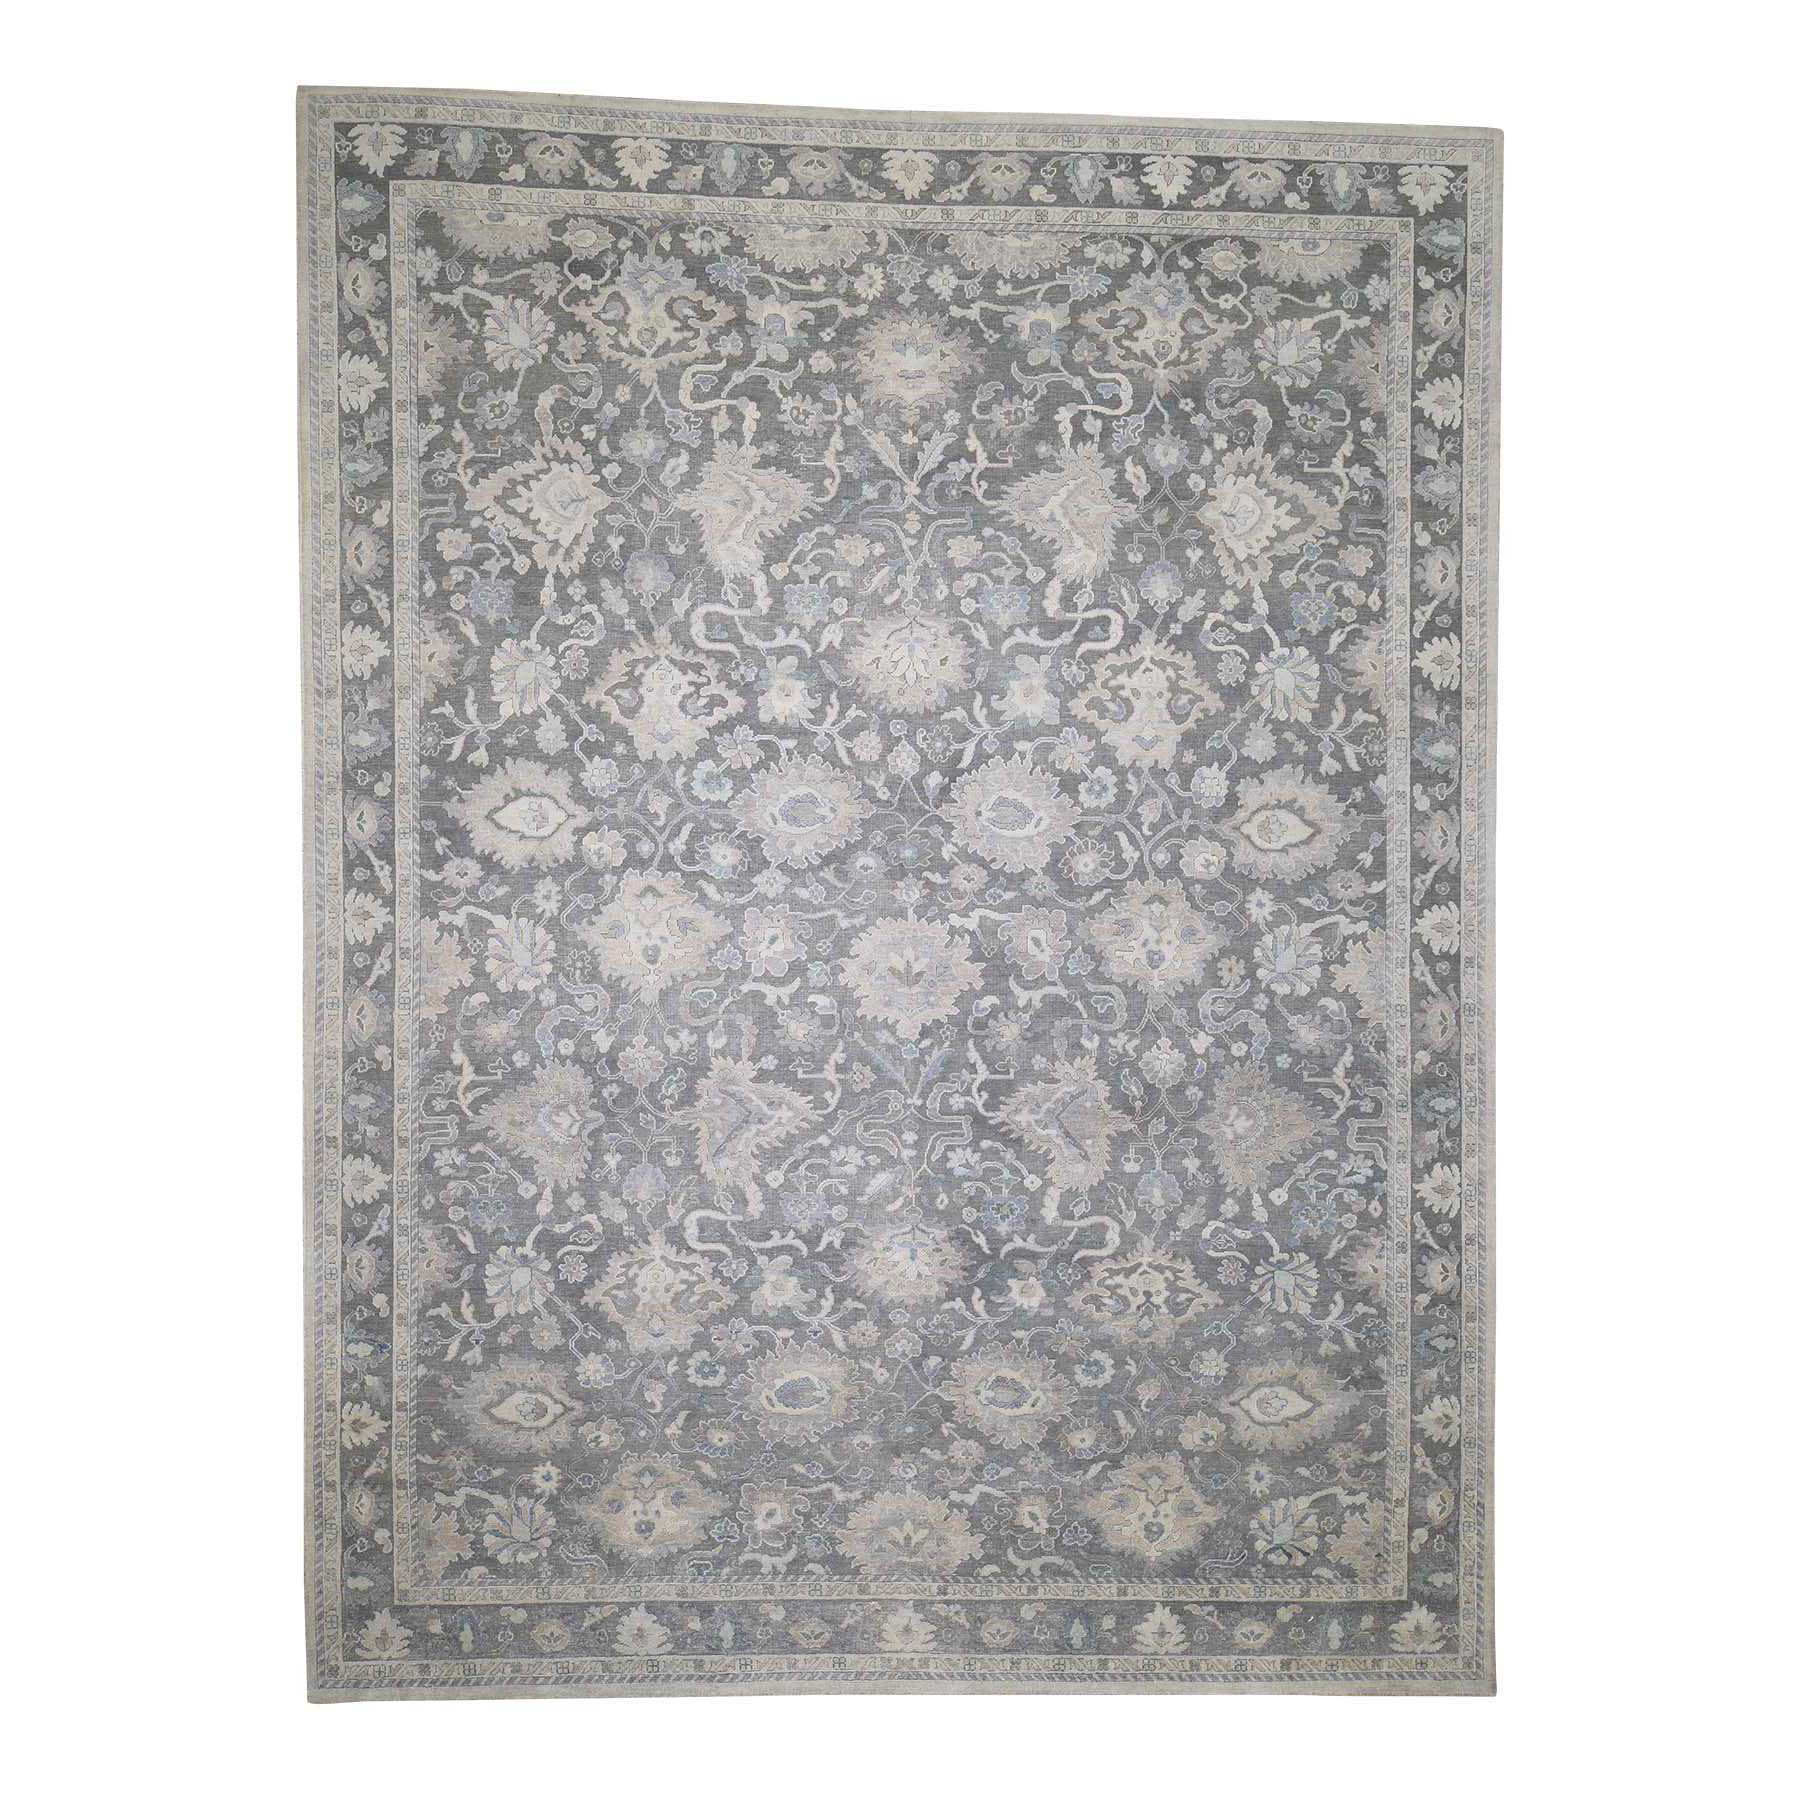 9'X12' Hand-Knotted Oushak Influence Pure Silk With Textured Wool Oriental Rug moada6e8